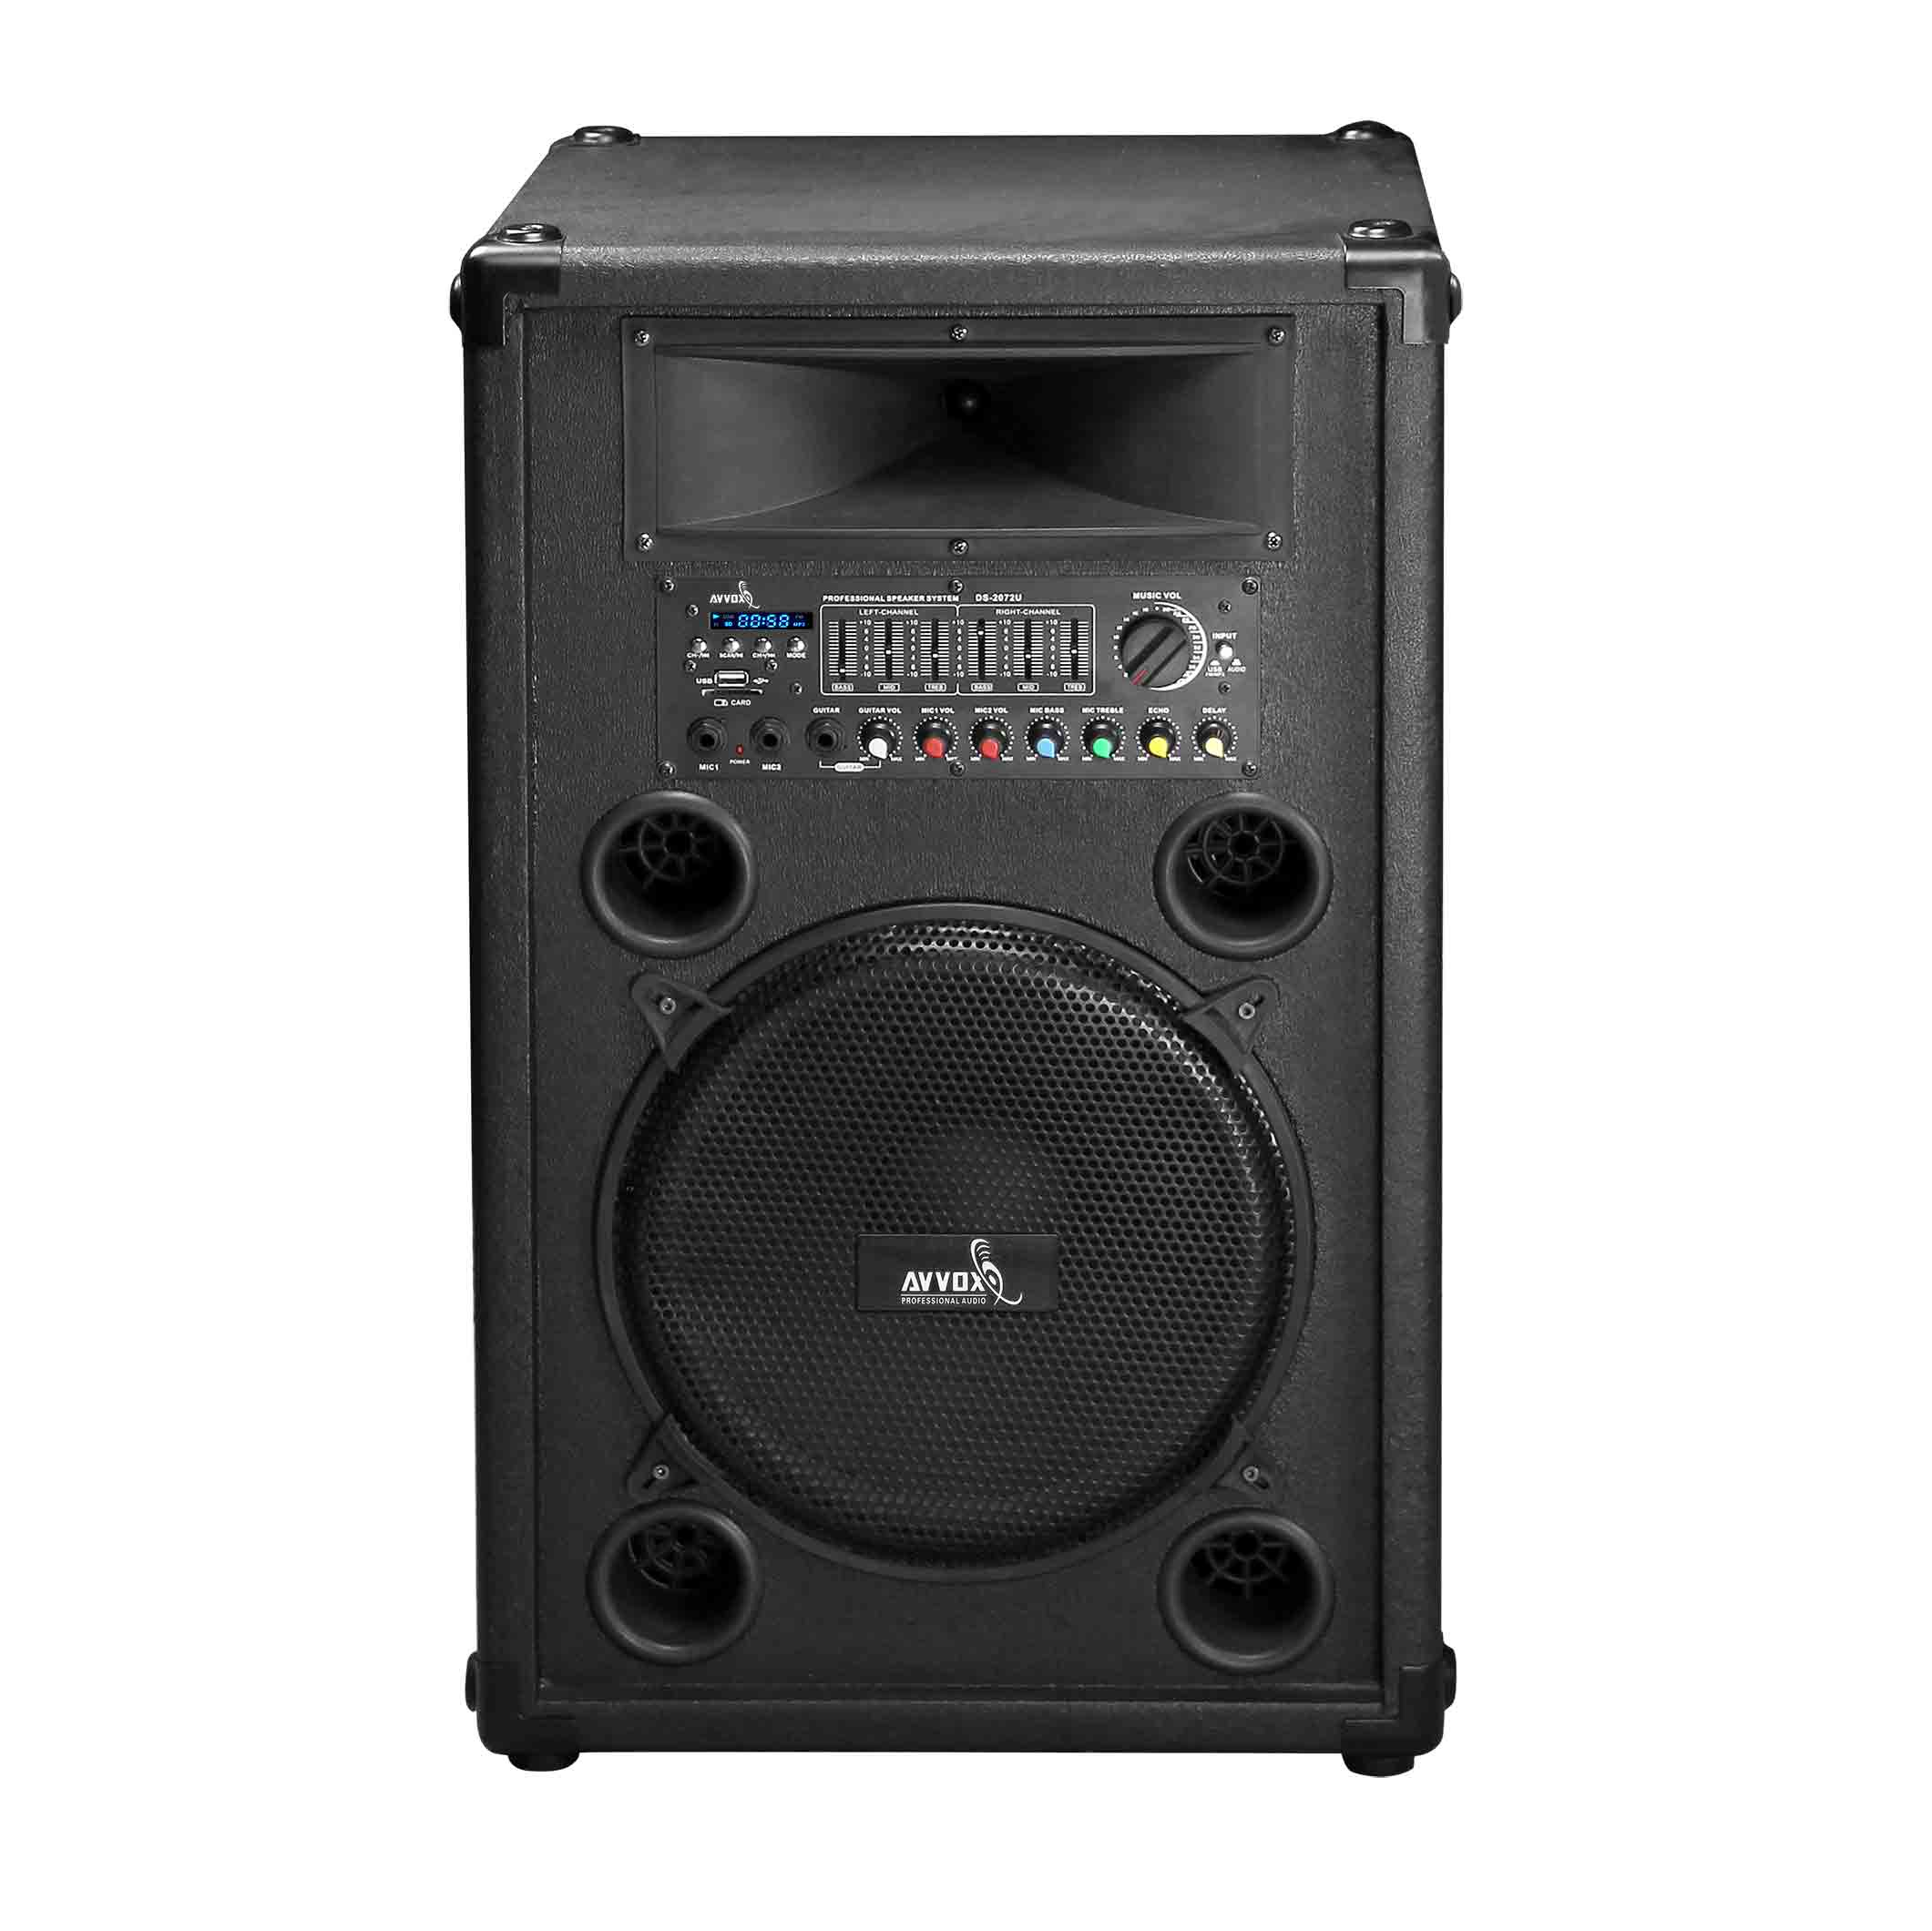 Avvox Speaker System To Buy